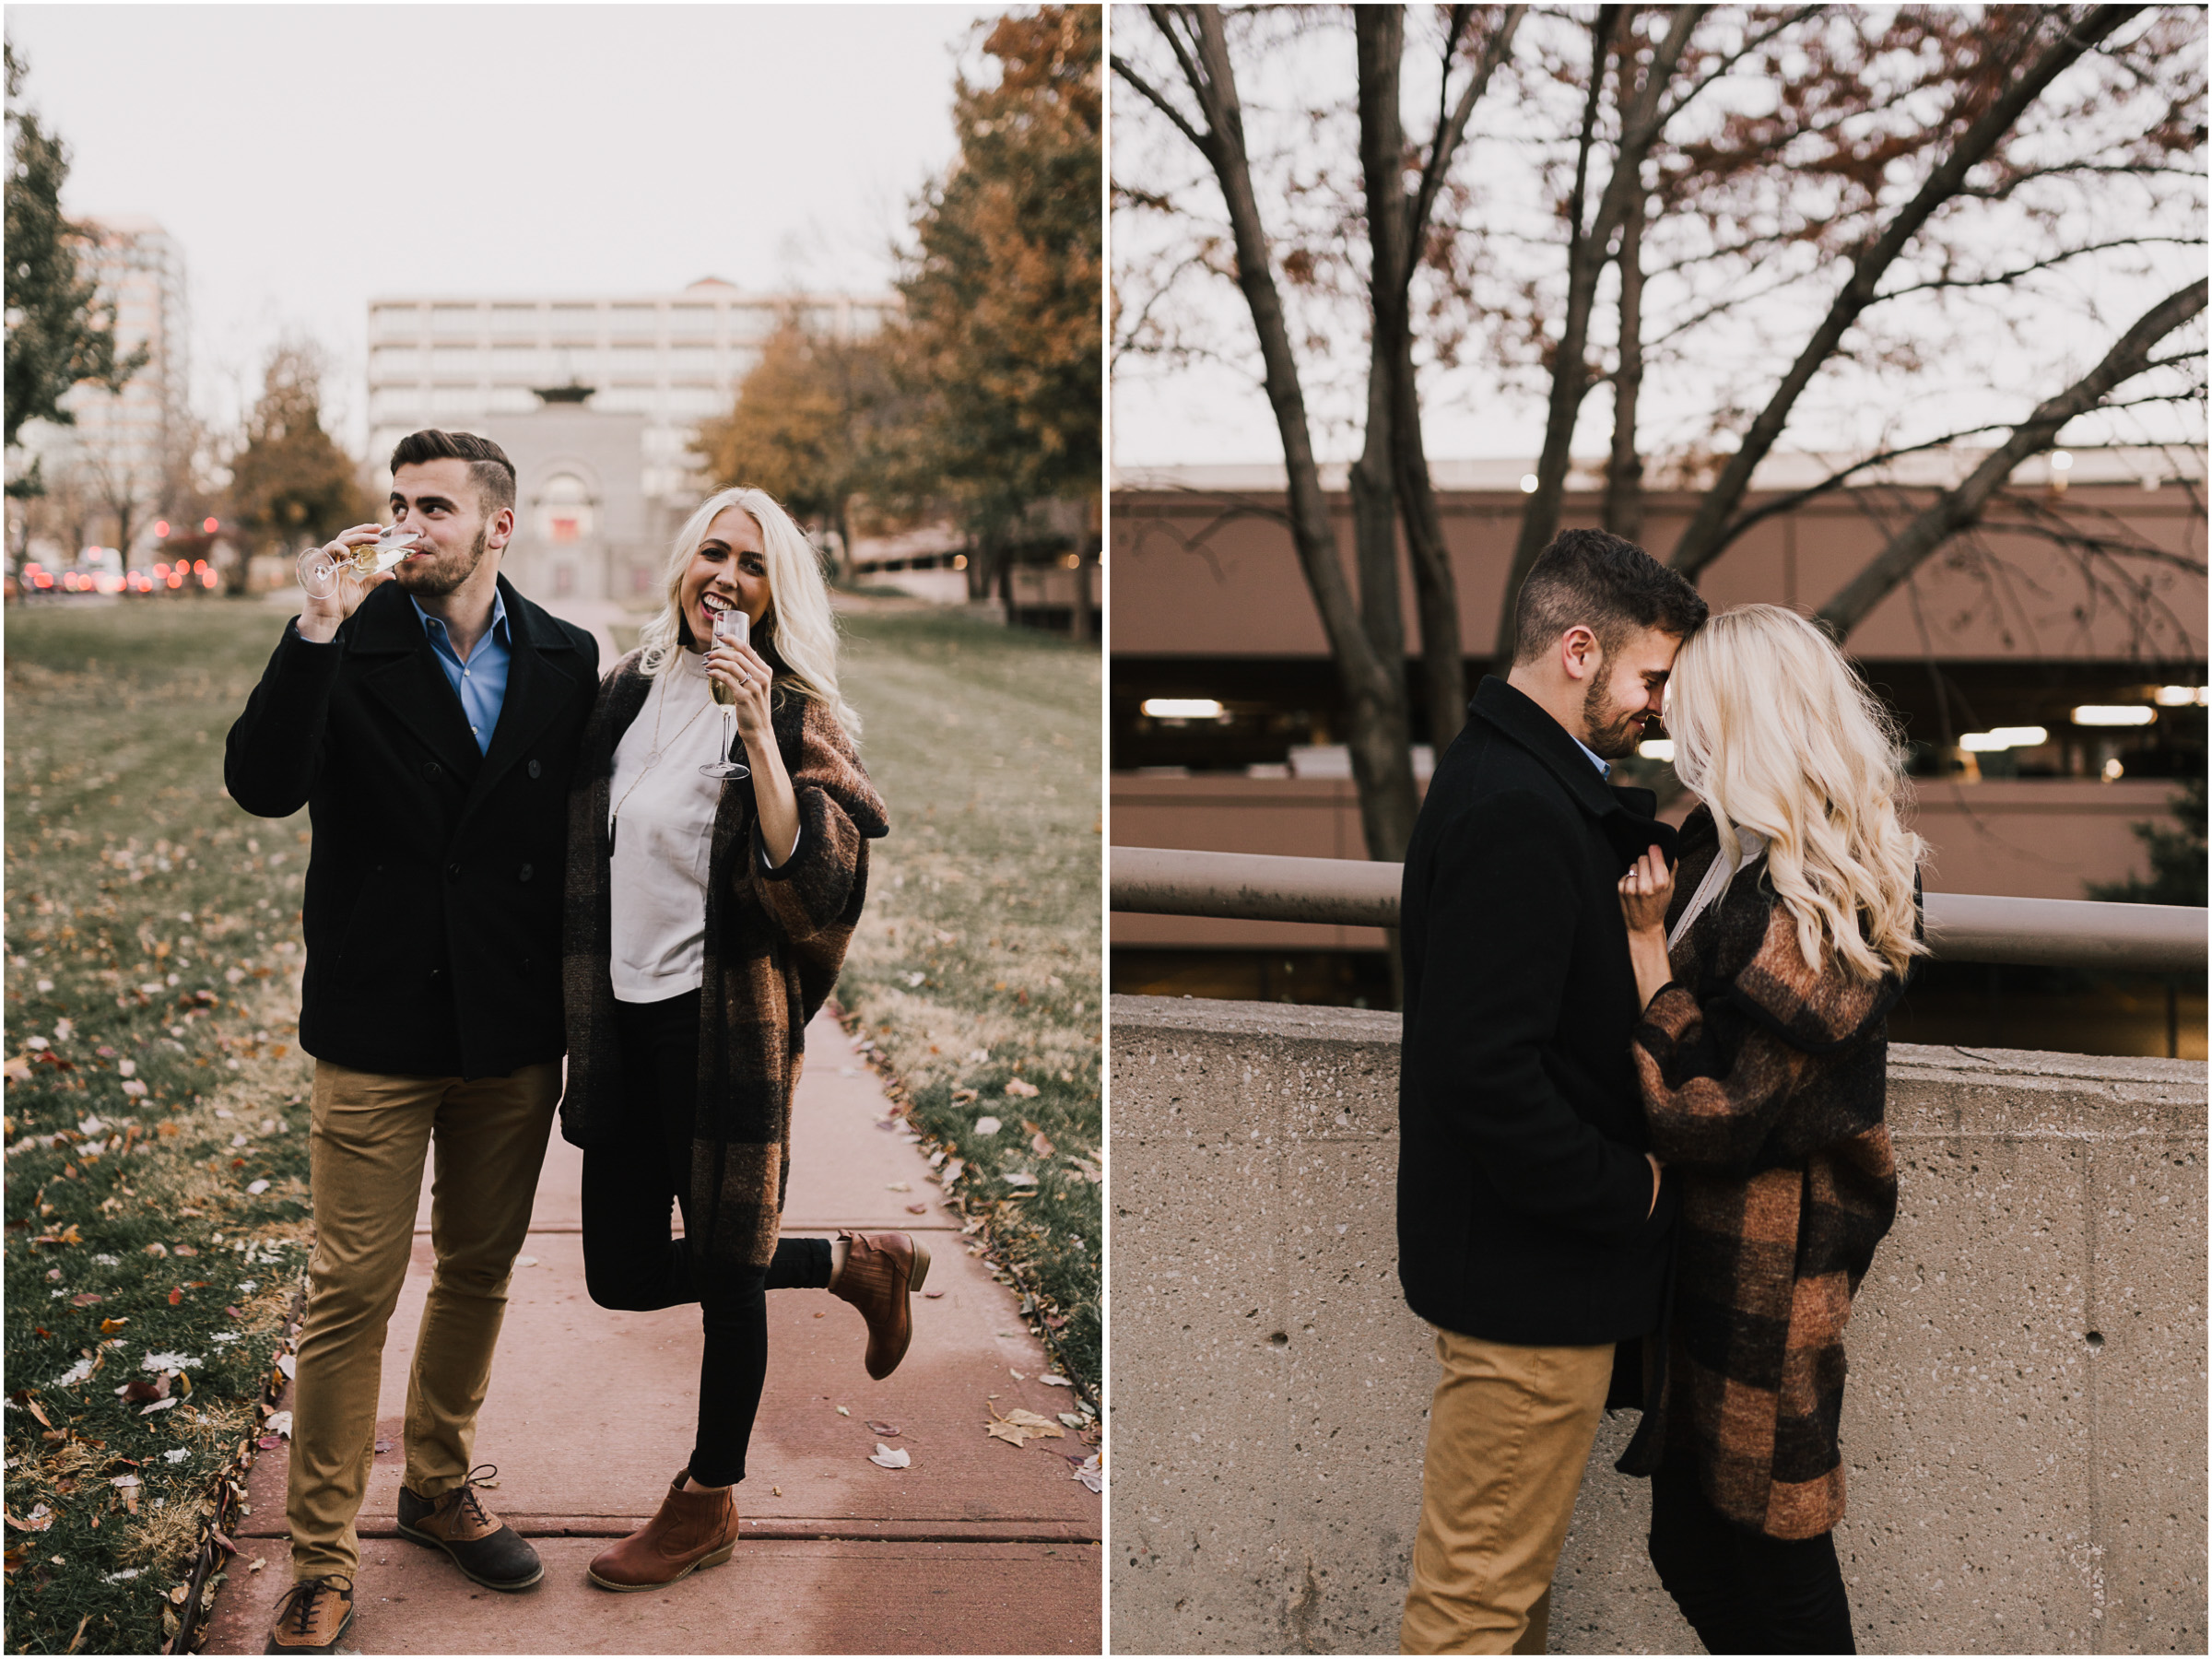 alyssa barletter photography proposal country club plaza park fall engagement how he asked she said yes-12.jpg